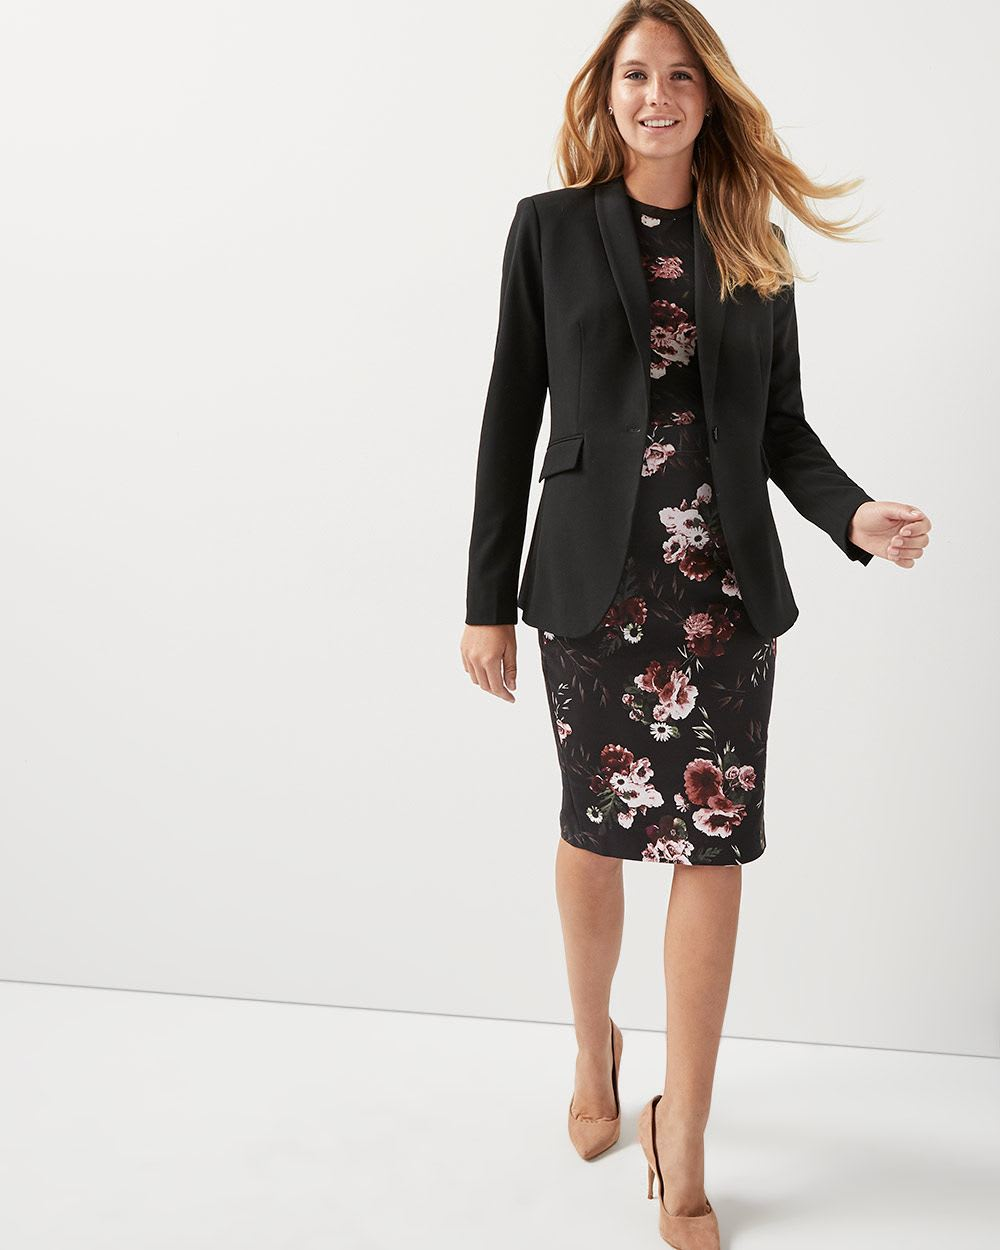 c1d1eb7e0 High-Waist Floral Modern chic pencil skirt | RW&CO.